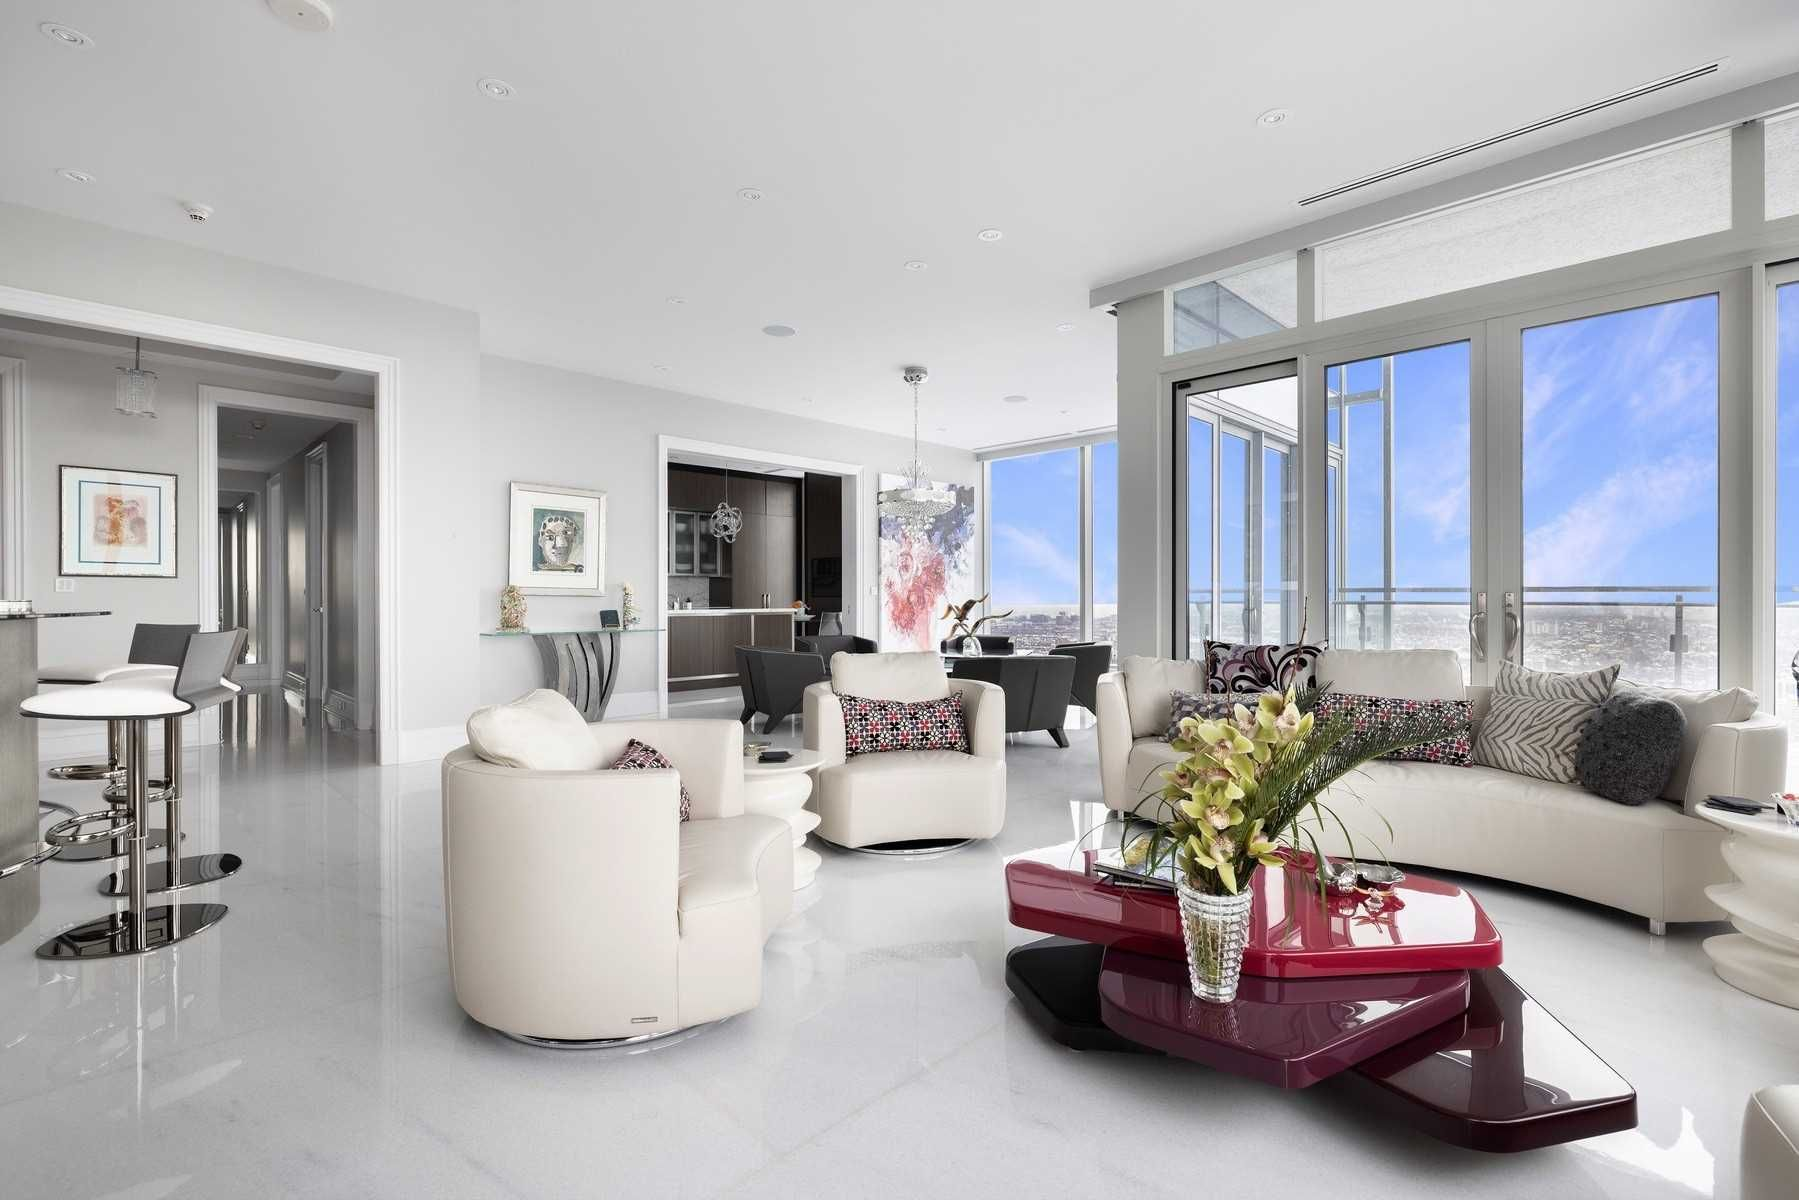 50 Yorkville Ave, unit 4001 for sale in Toronto - image #2